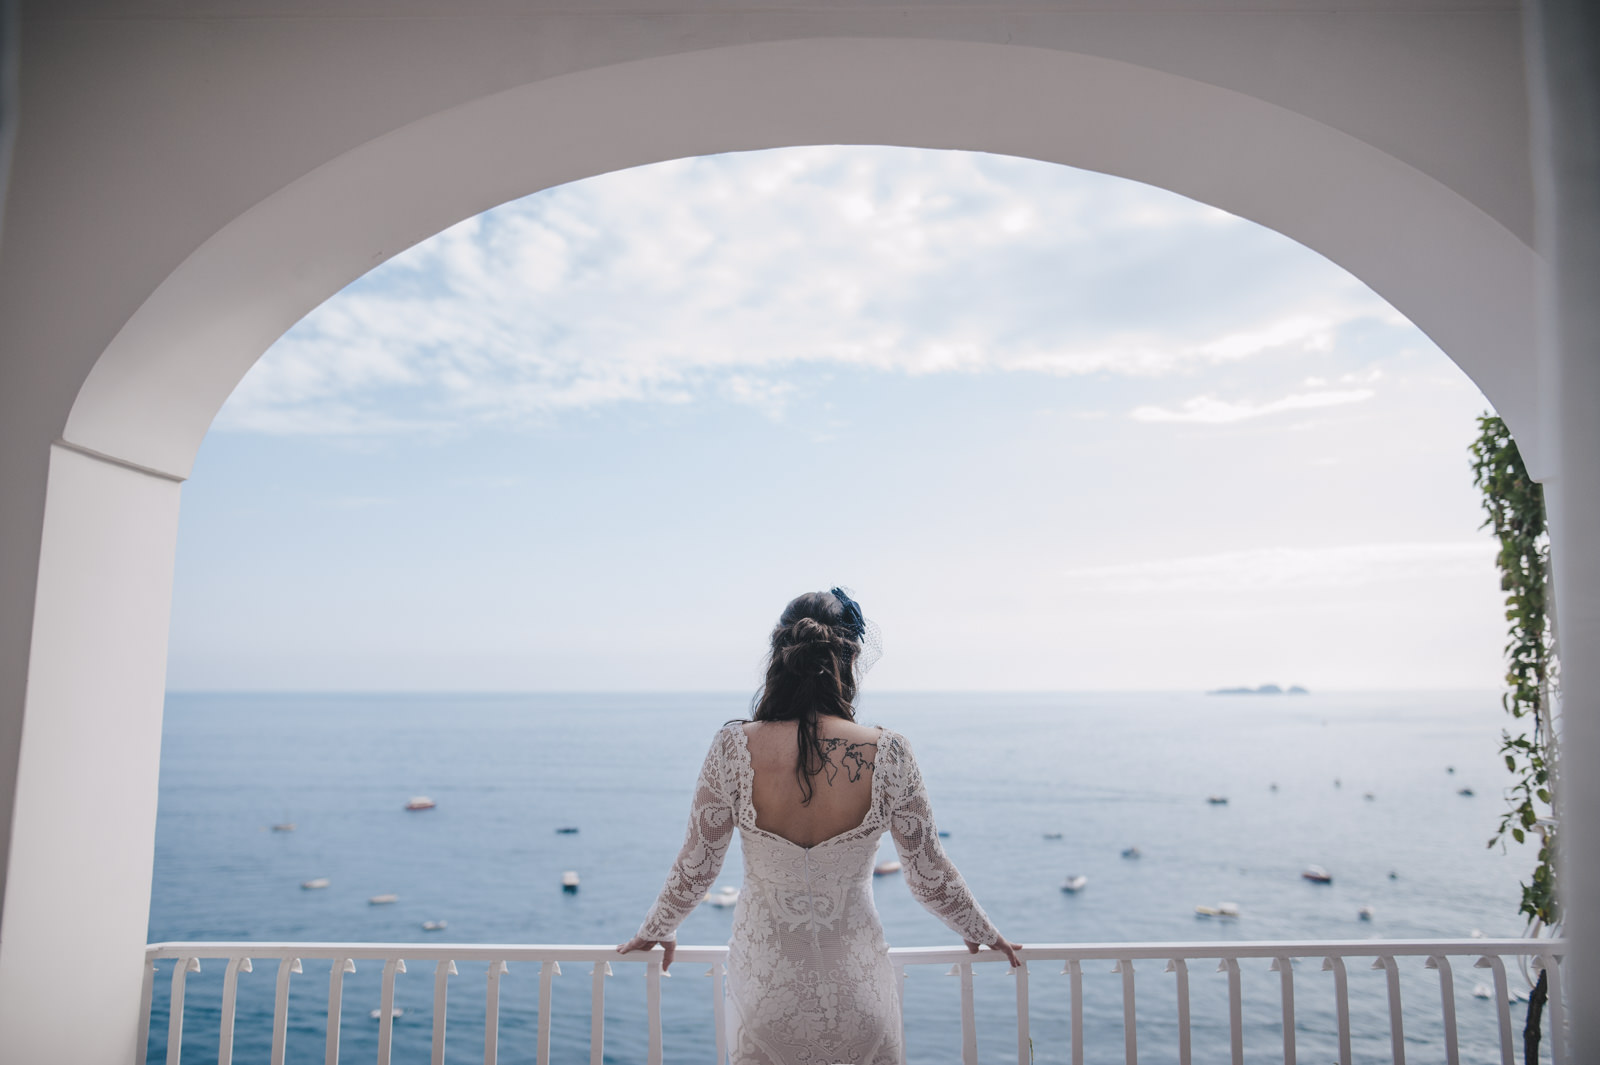 the bride on a balcony looking at the sea